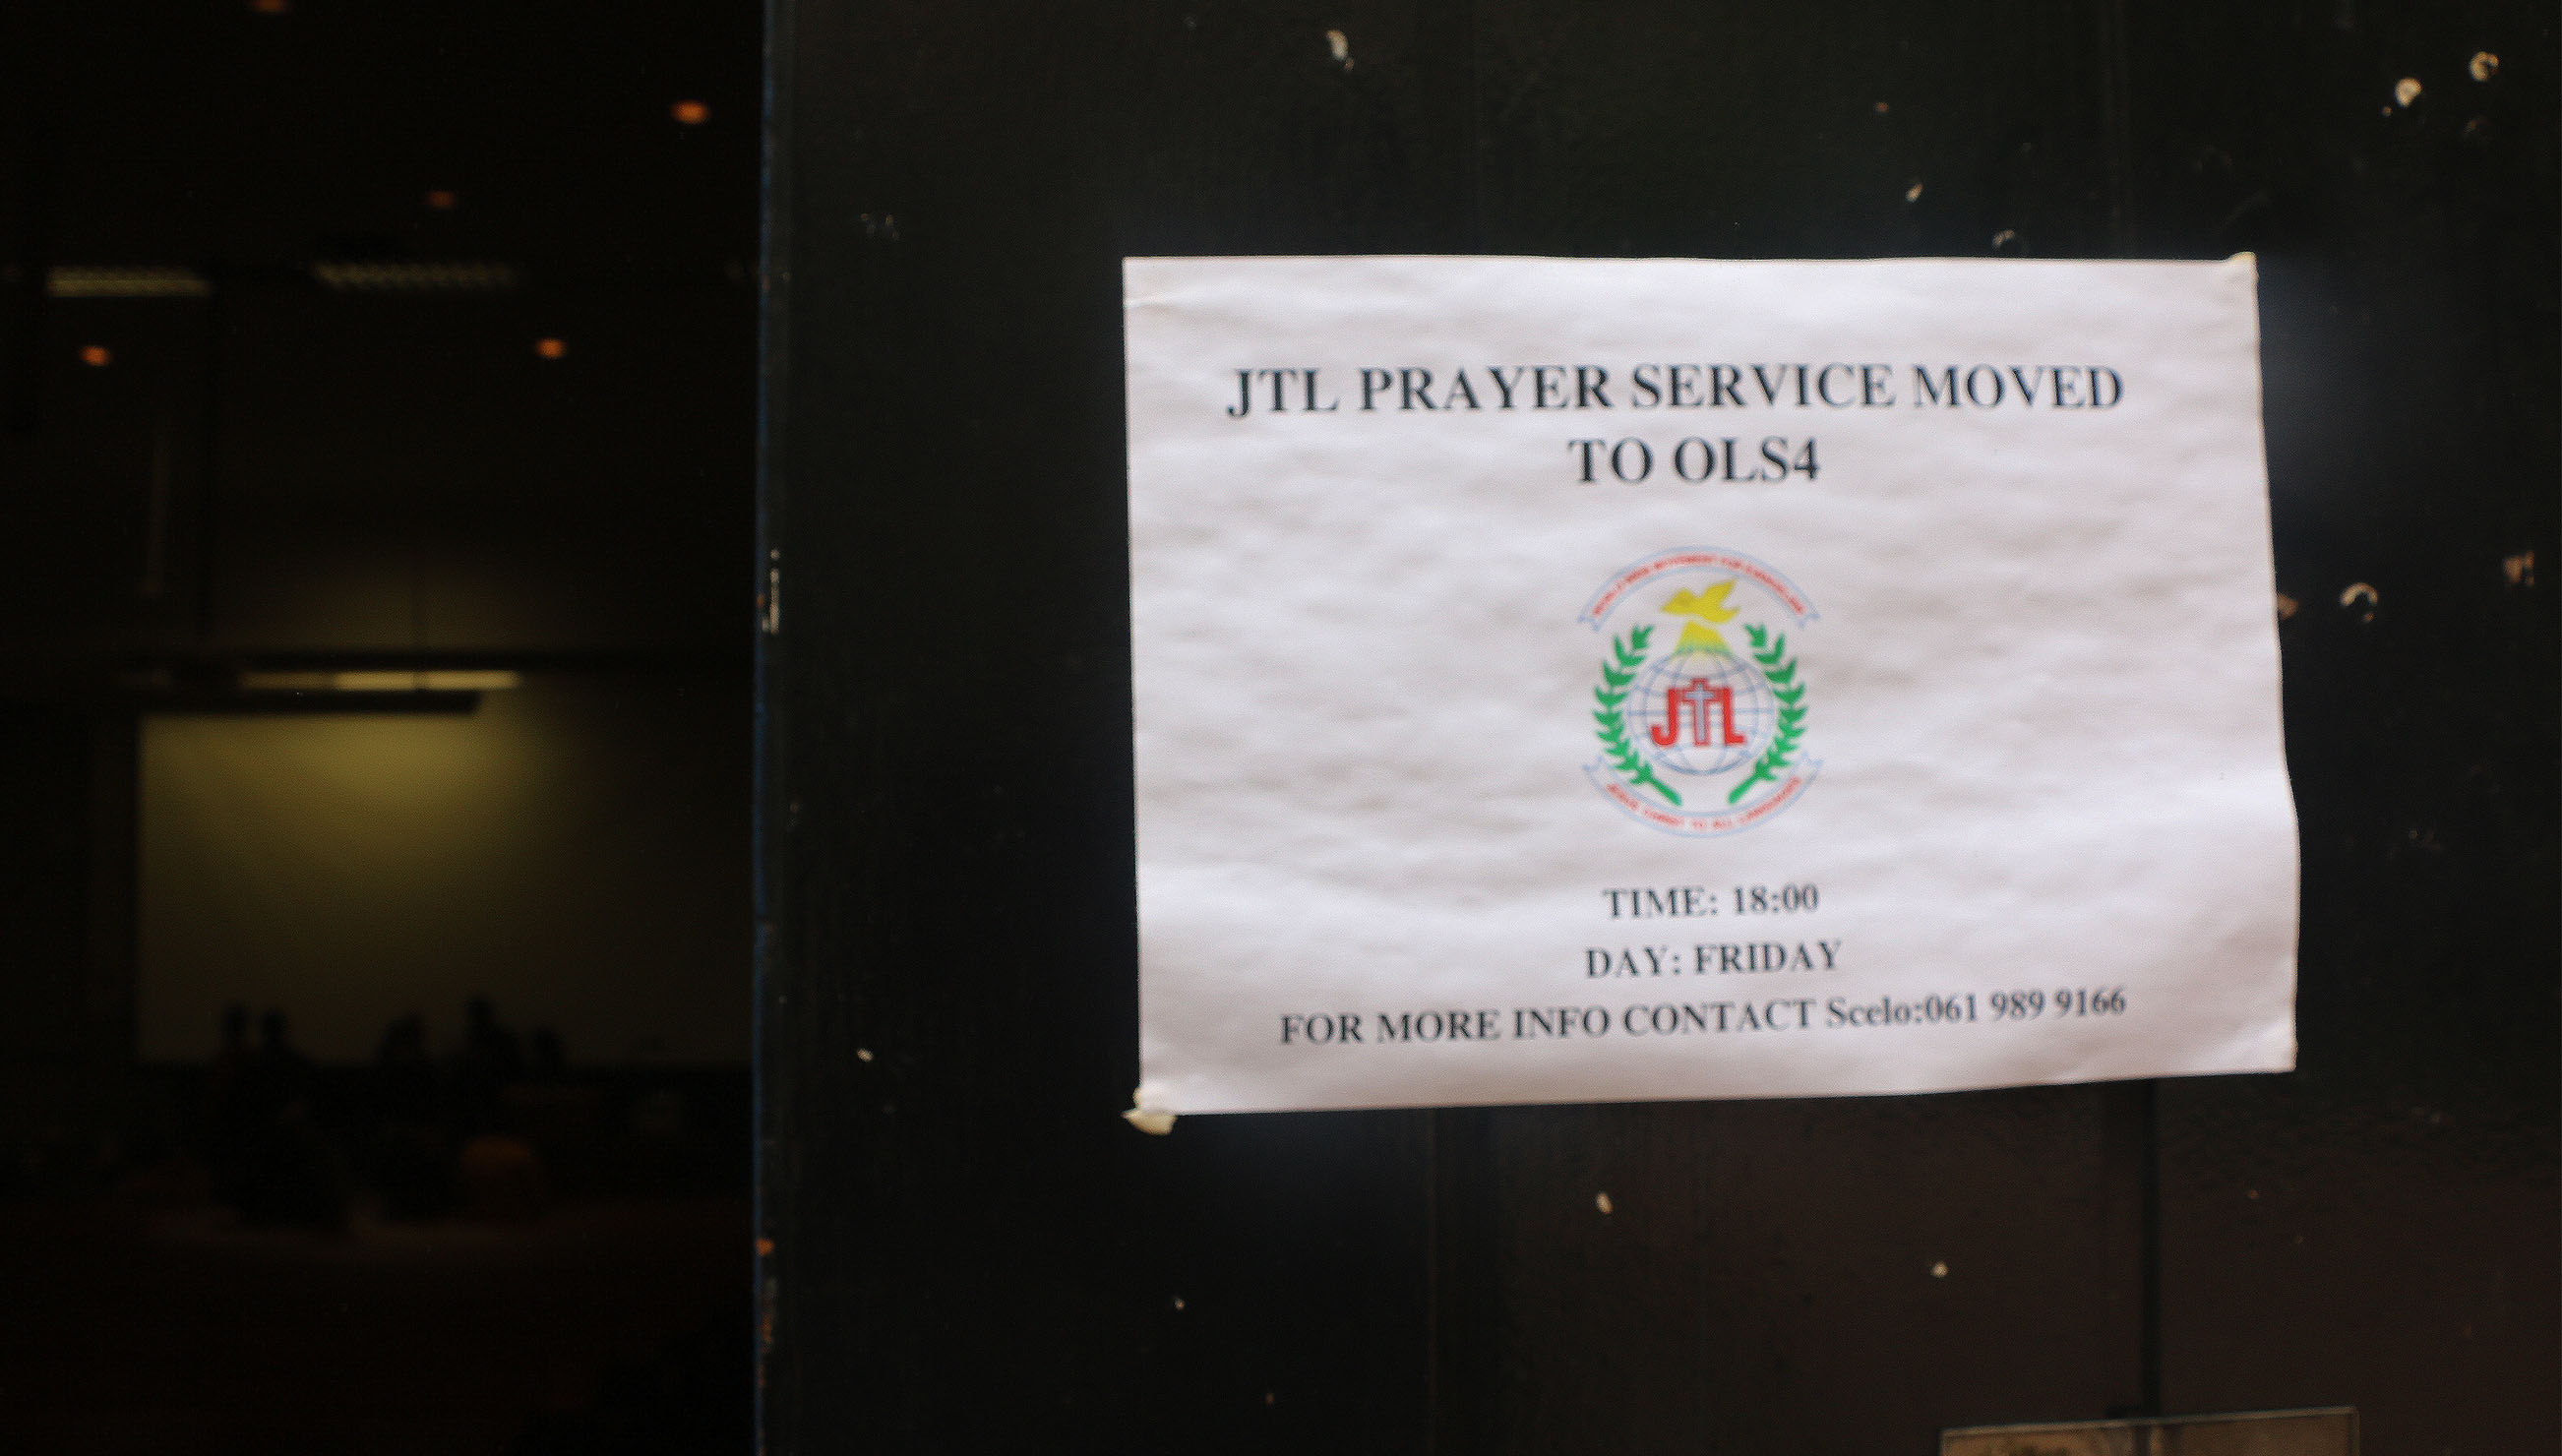 Wits church community ordered to vacate buildings they hold services in